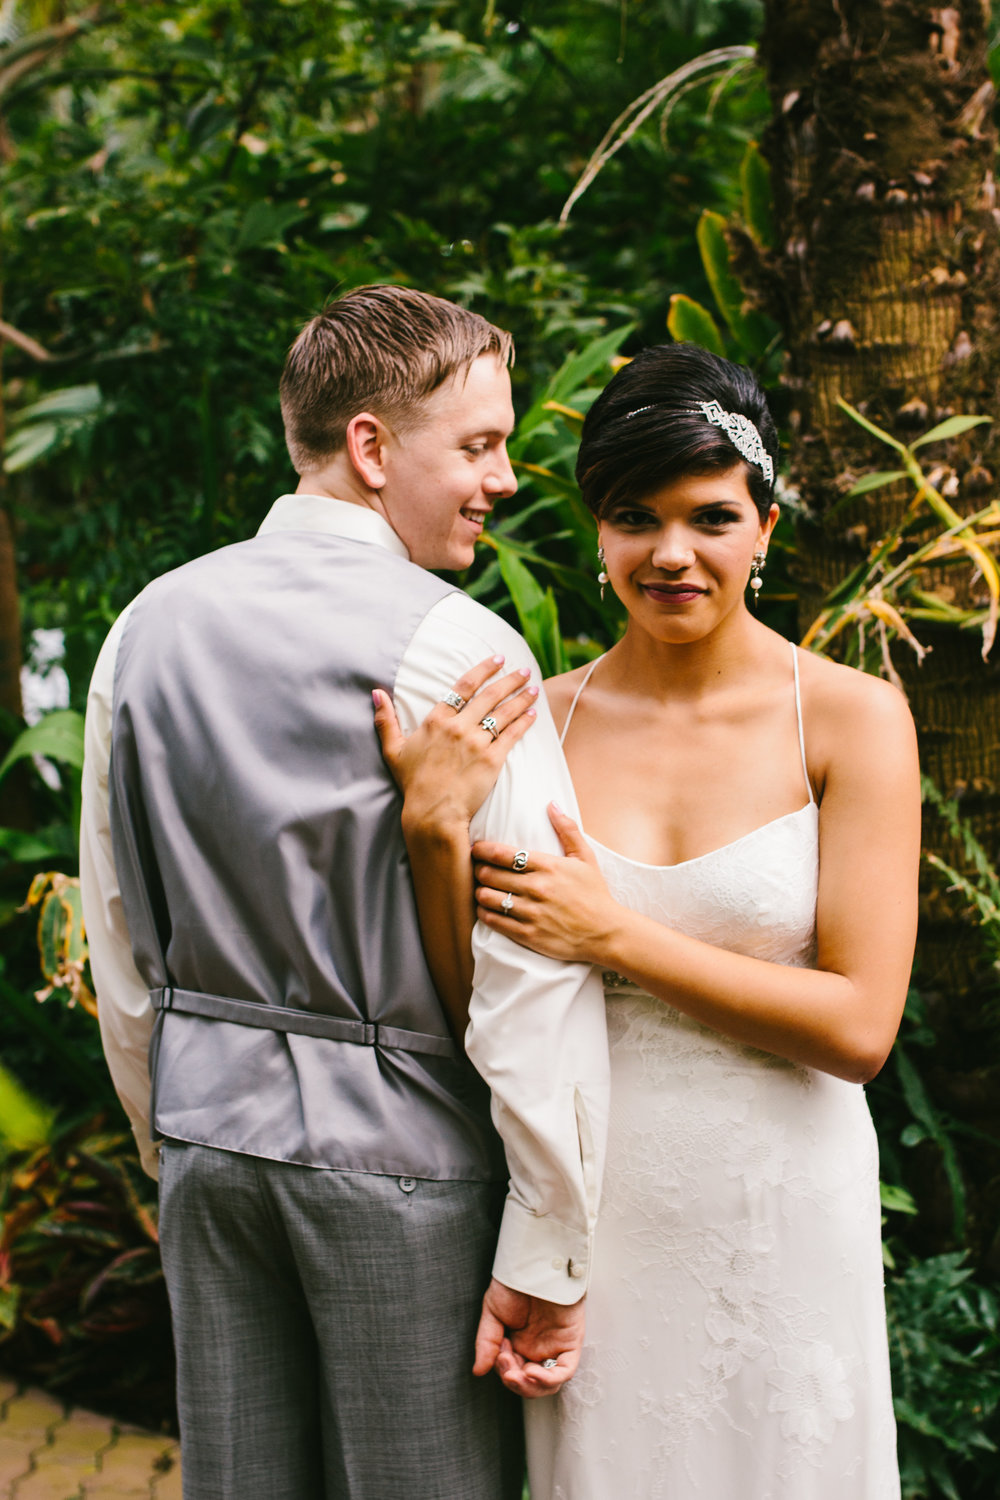 Gorgeous Bride and Groom Portraits - A Botanical Gardens Budget Wedding - From Britt's Eye View Photography